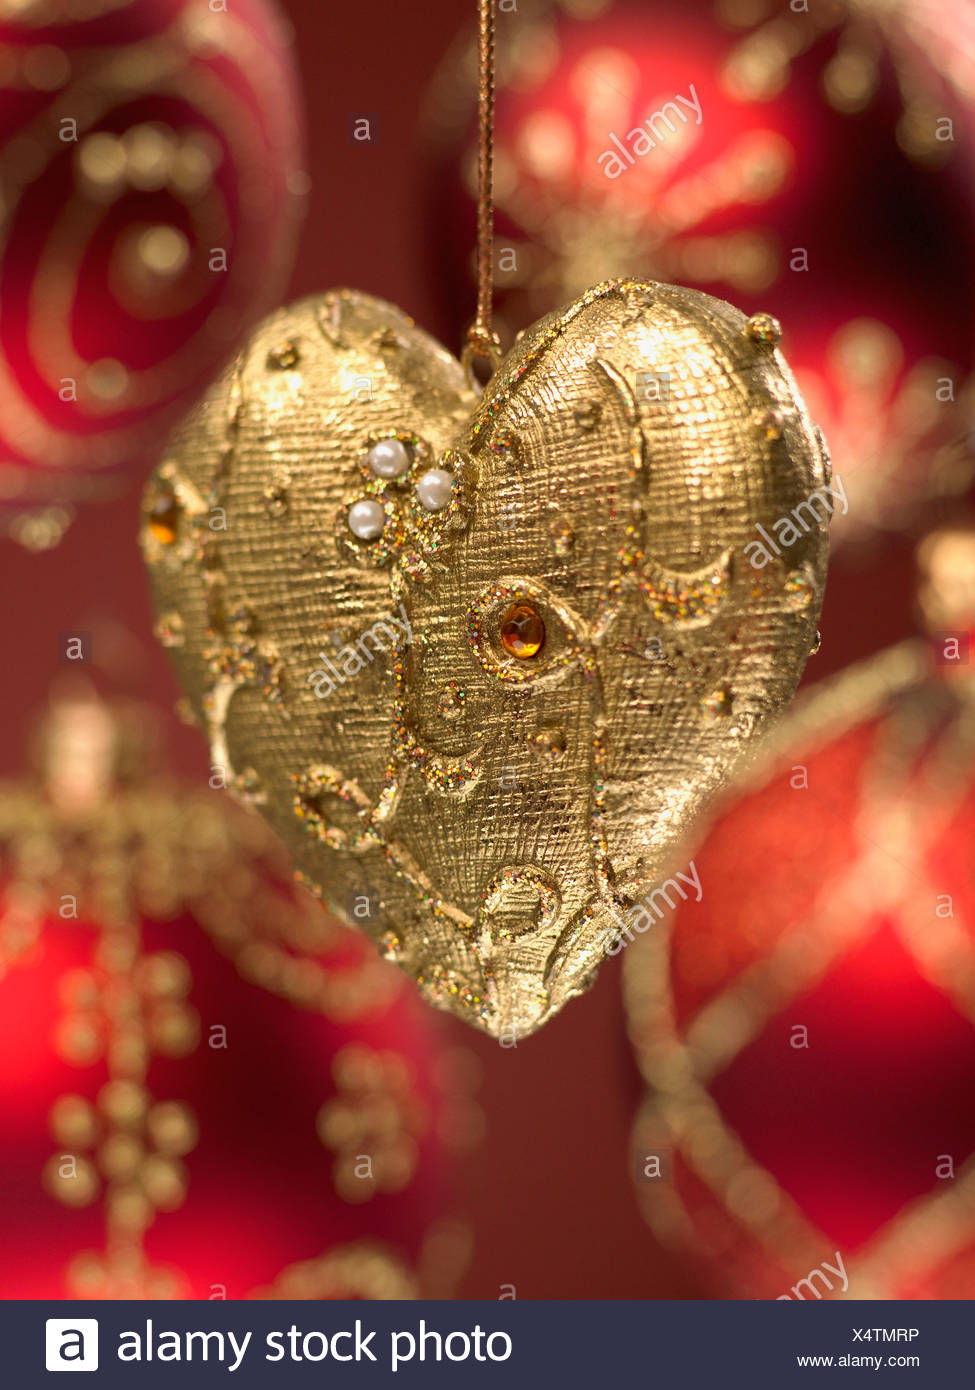 Close up of red and gold Christmas ornaments - Stock Image